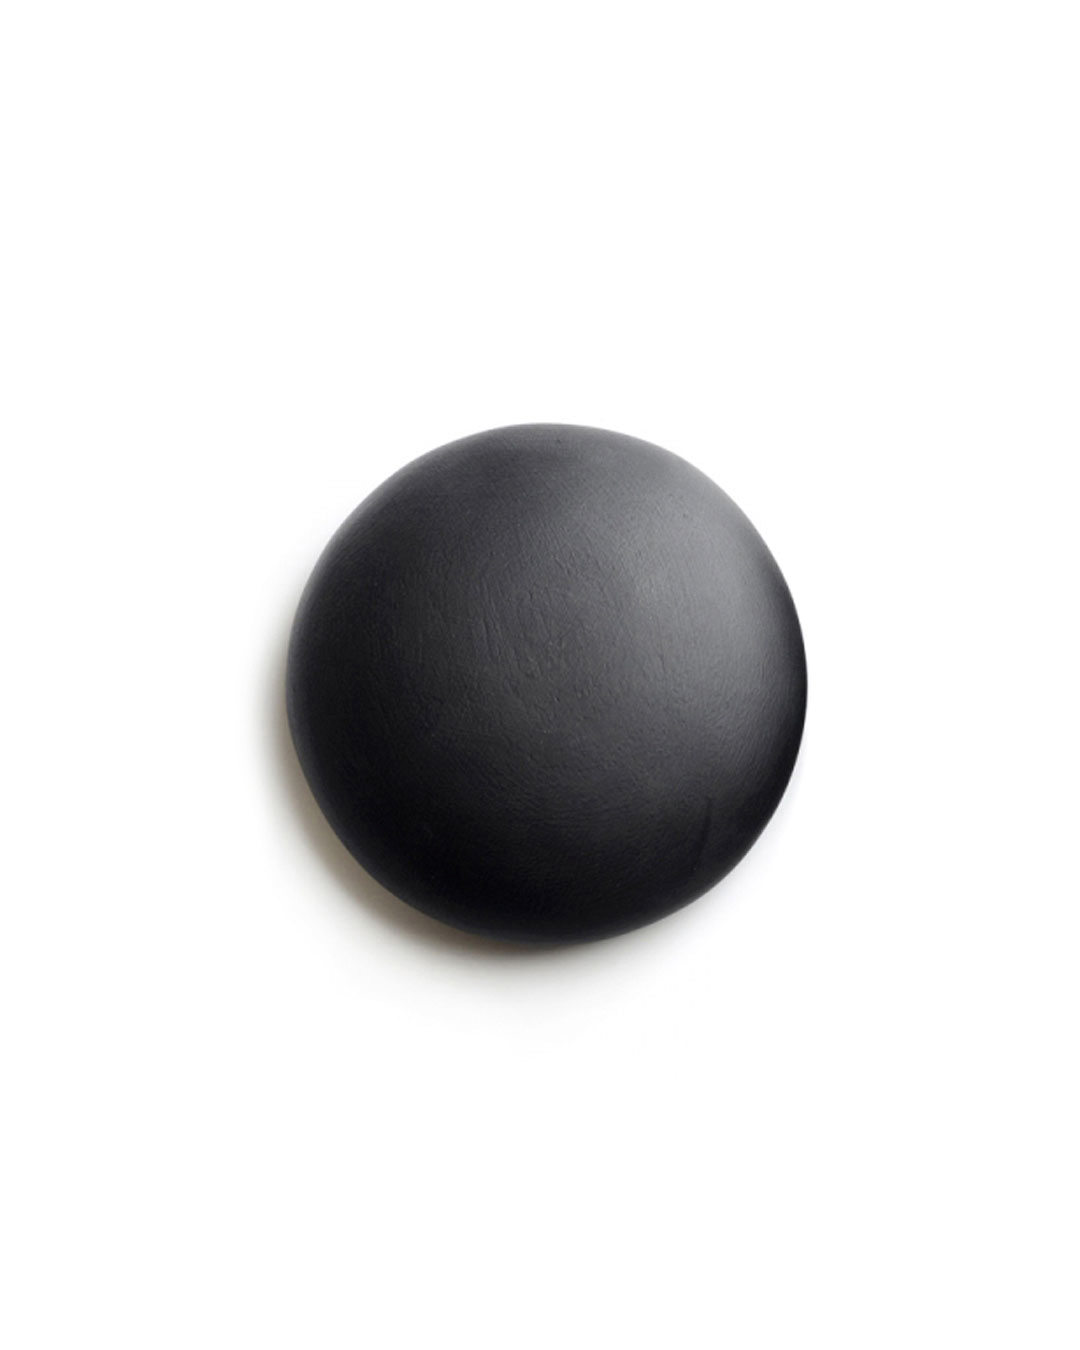 David Huycke, Black Round Mercury, 2012, object; wenge, paint, 155 x 155 x 50 mm, €630